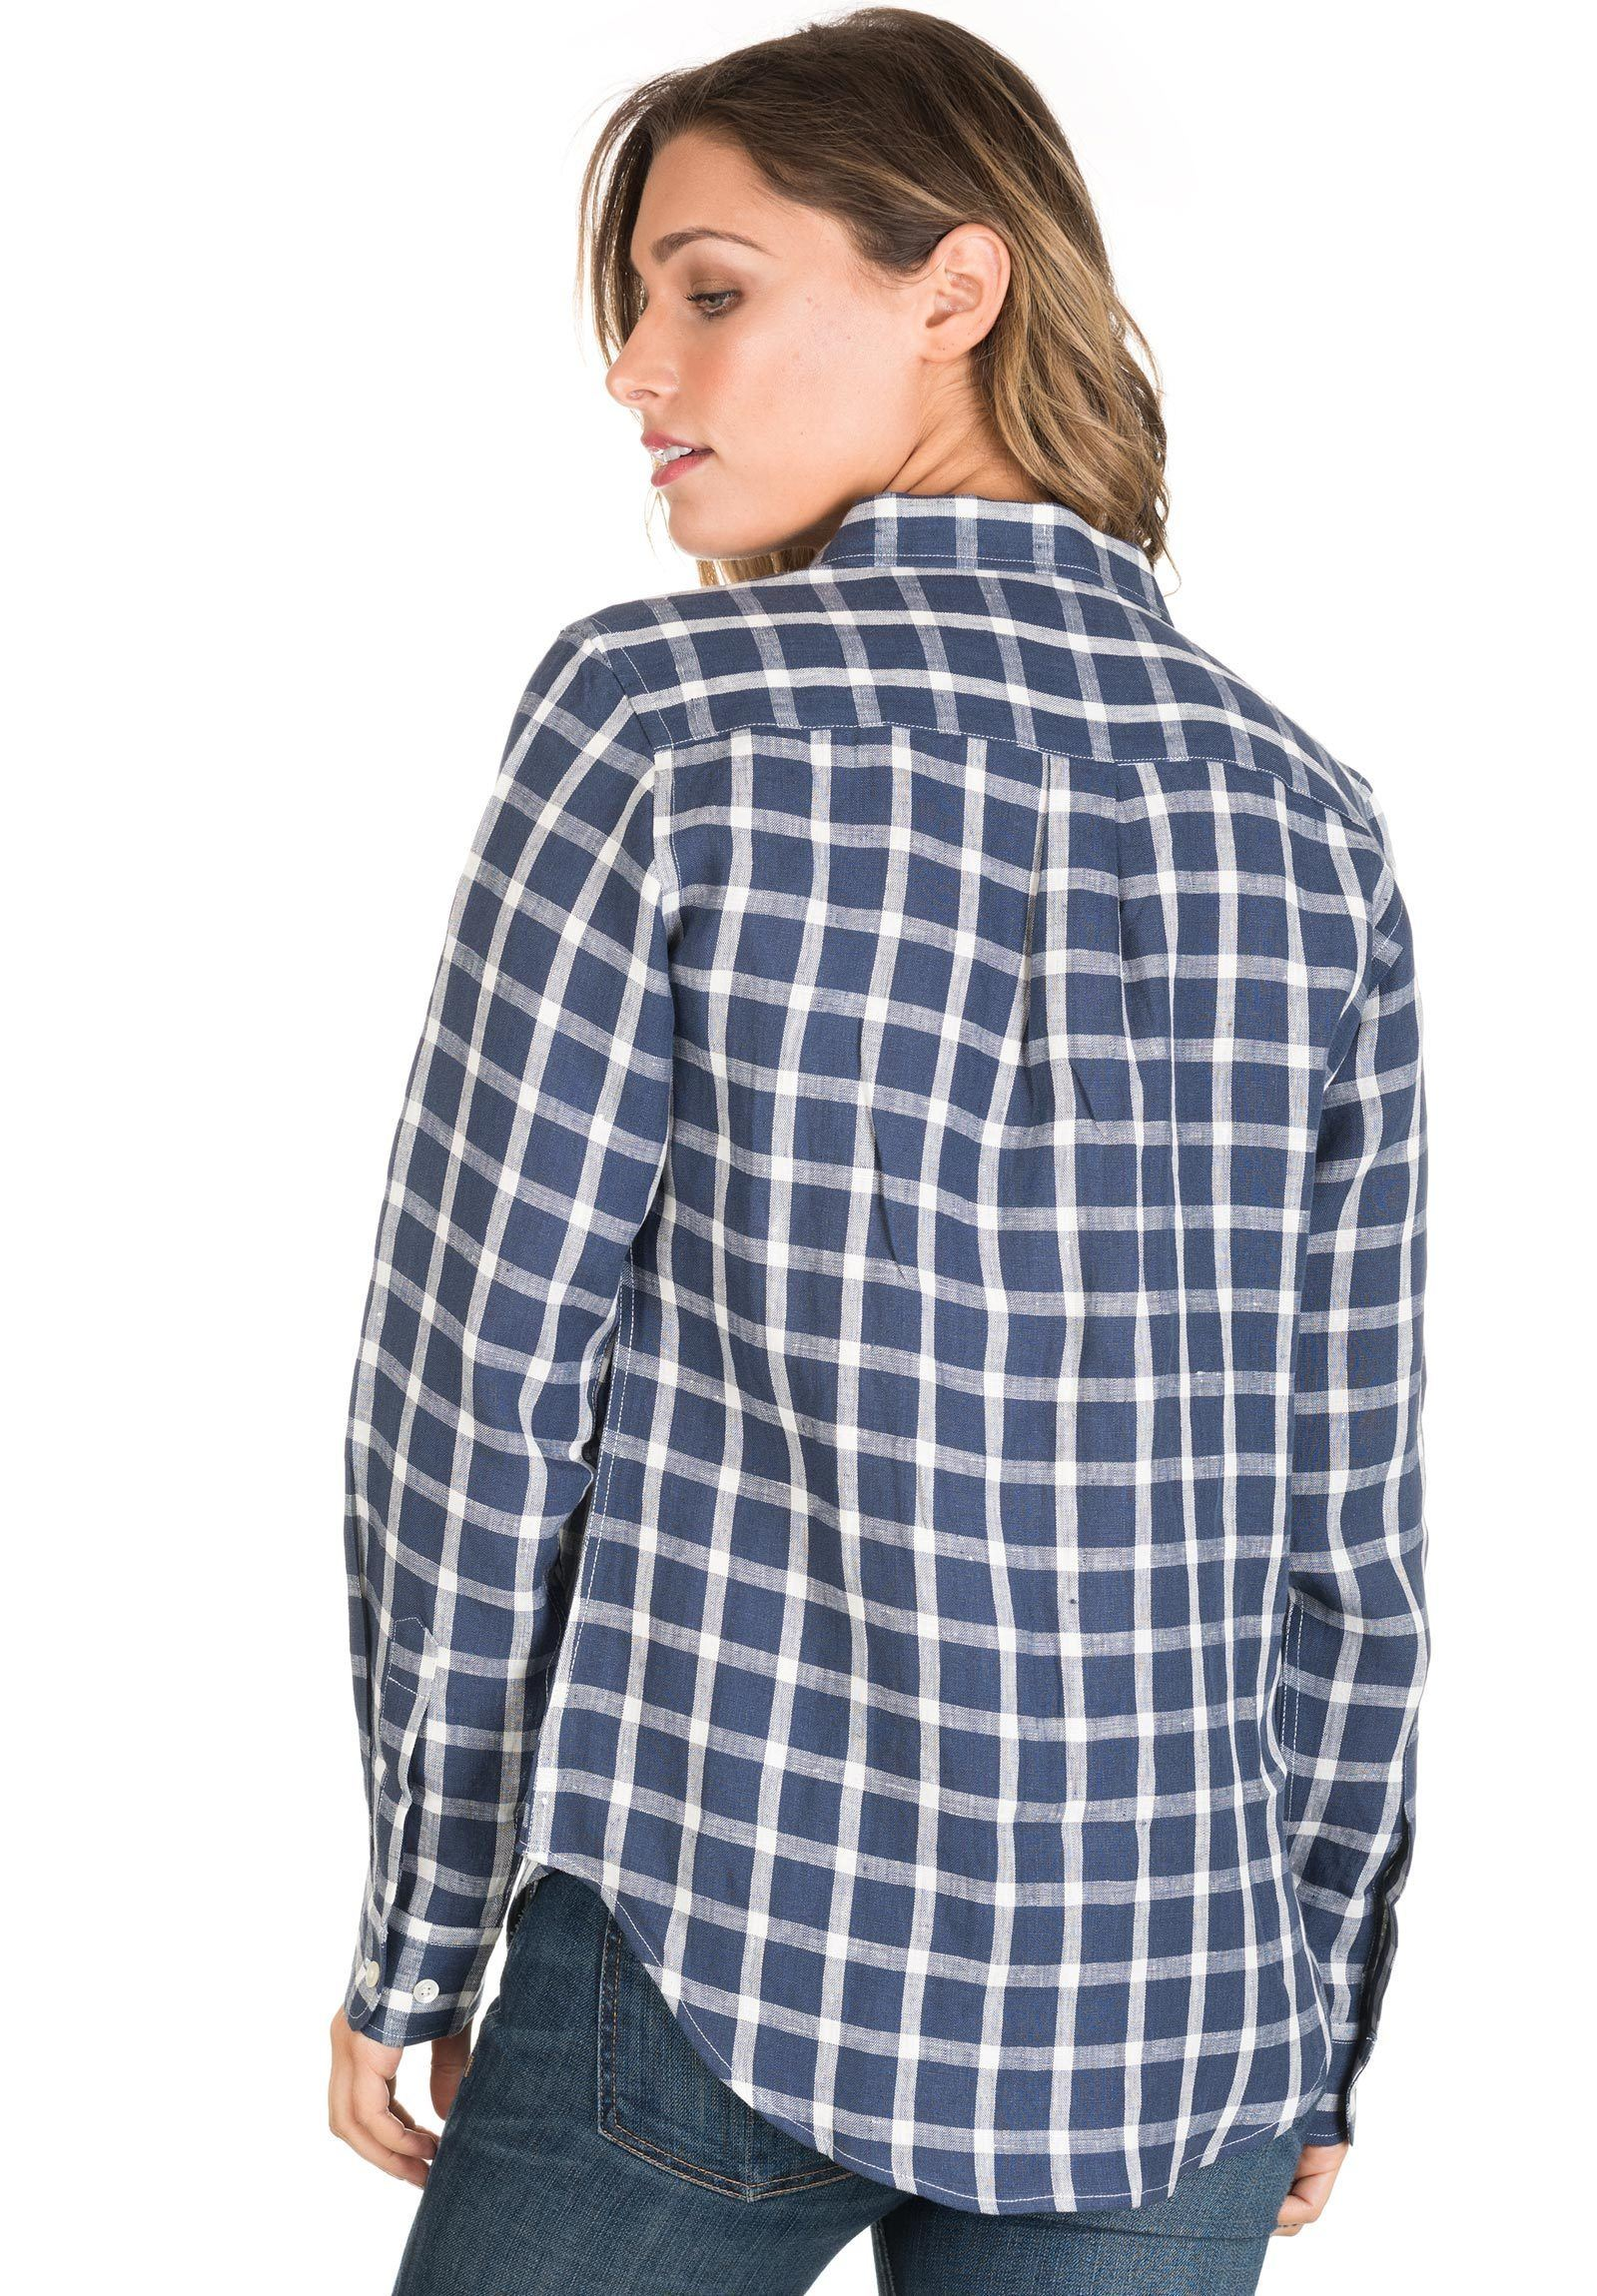 Grid, Blue & White linen check shirt